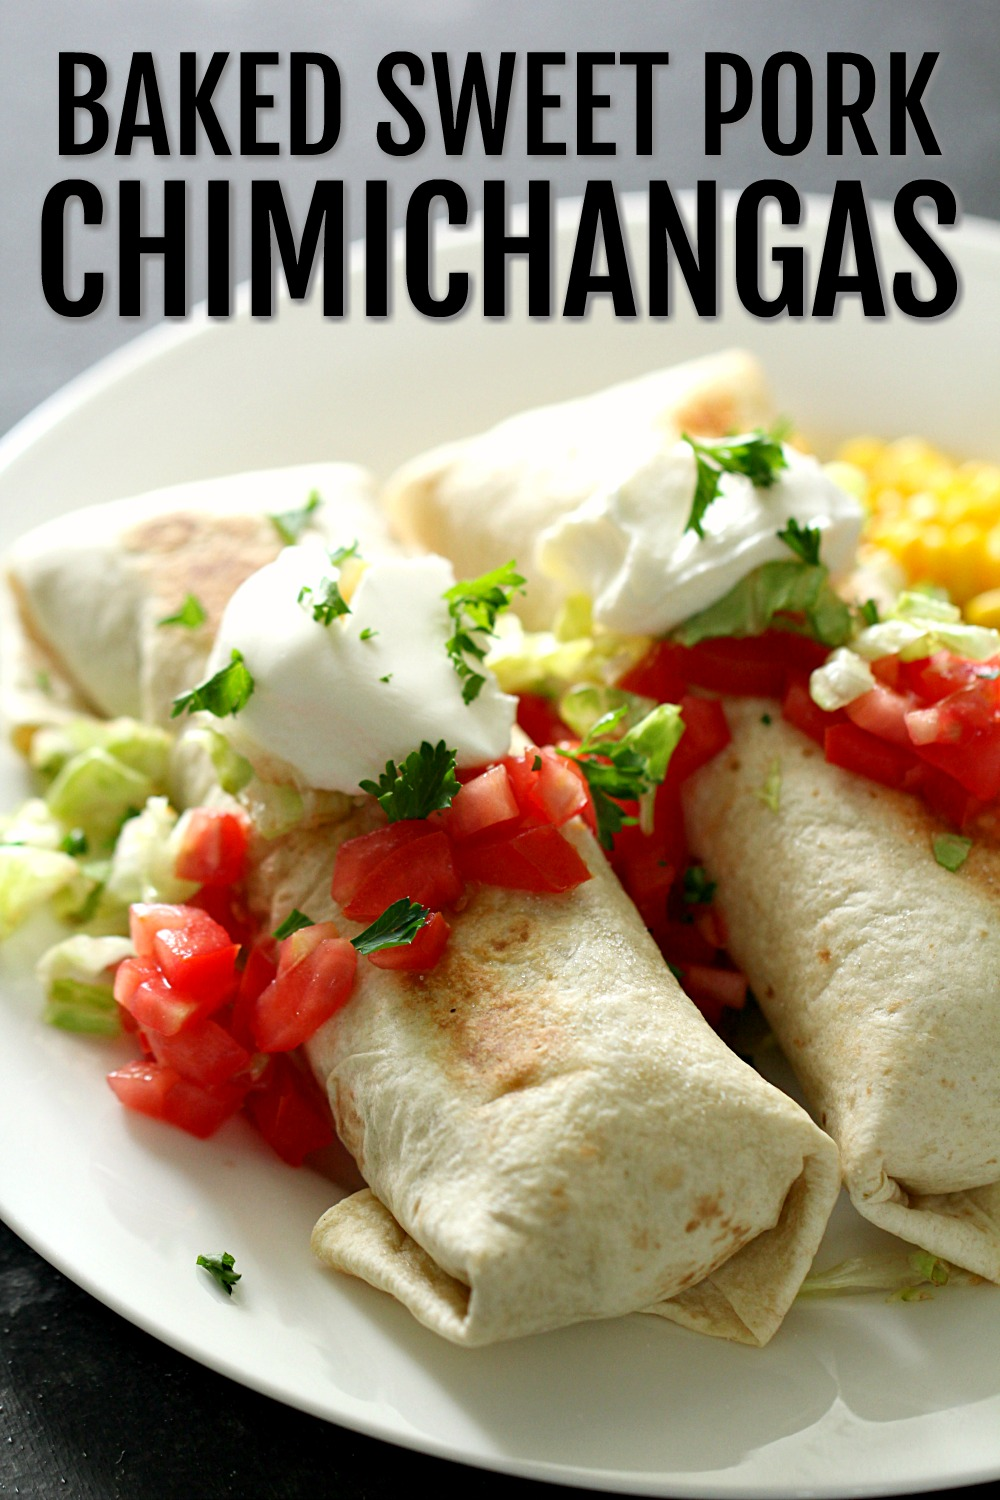 Baked Sweet Pork Chimichangas on a white plate, topped with sour cream and salsa